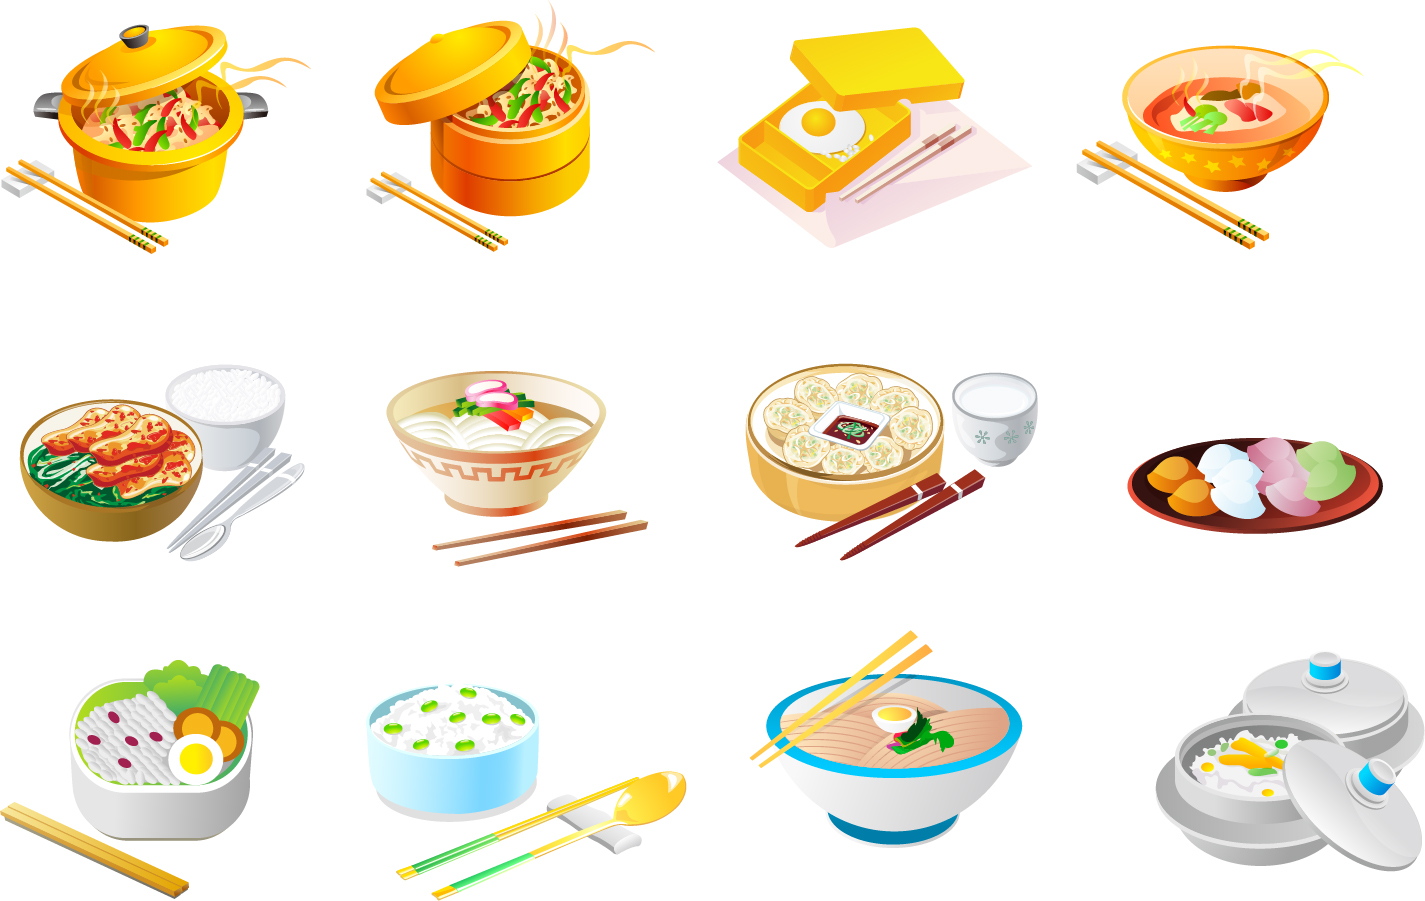 Chinese food icon for 8 chinese cuisine